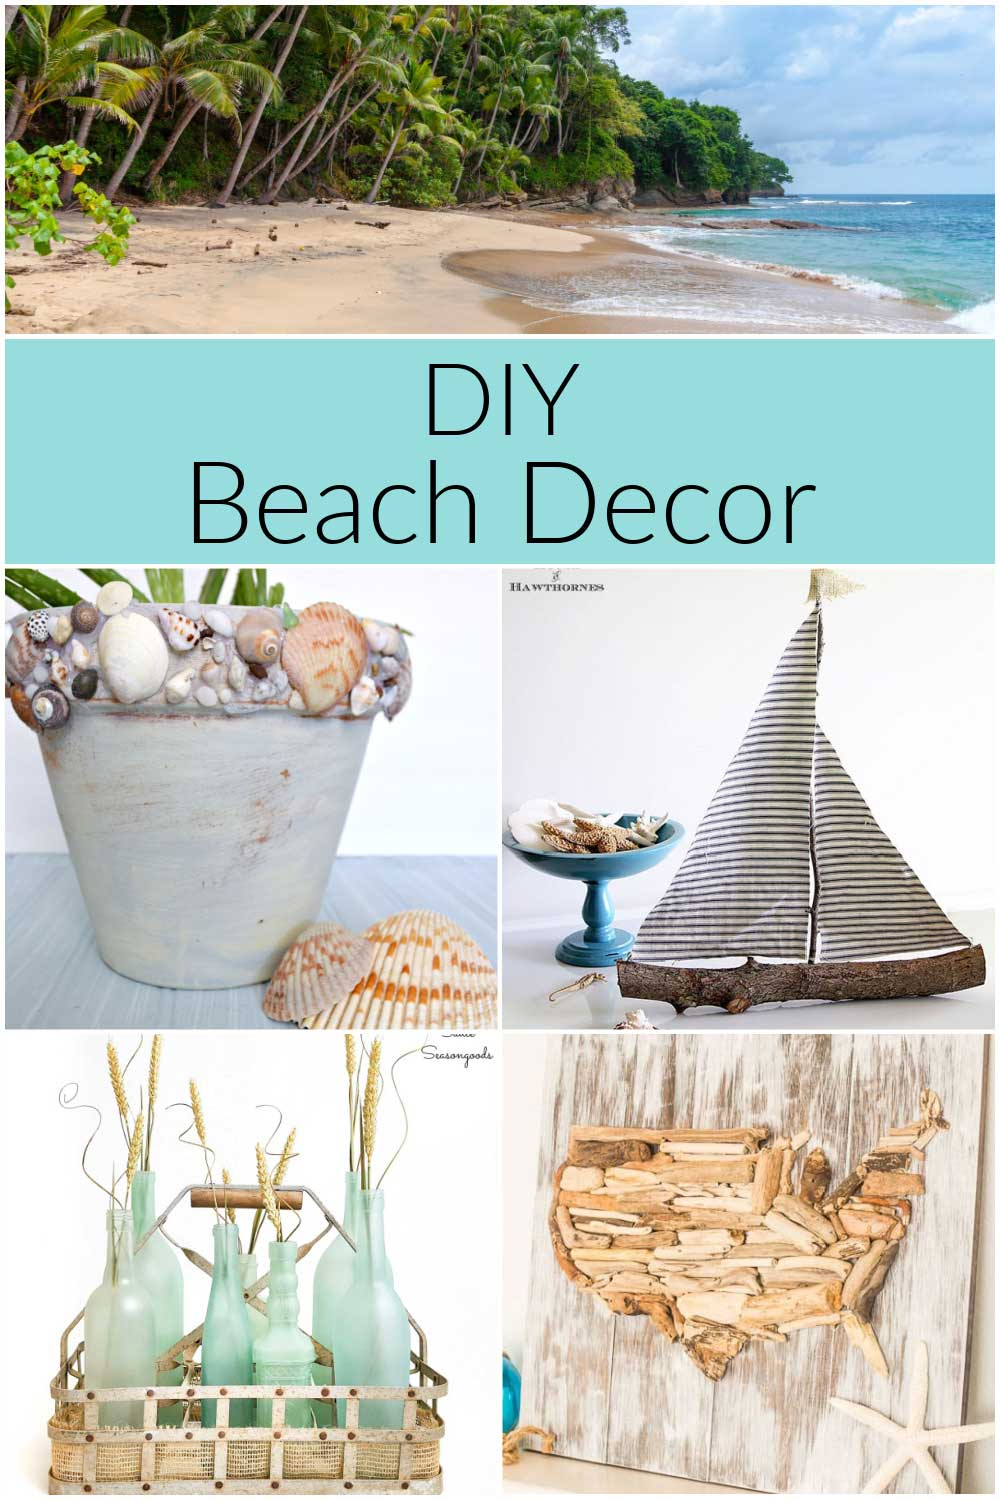 DIY beach decor image with sailboat, shell covered flower pot, driftwood map and more.